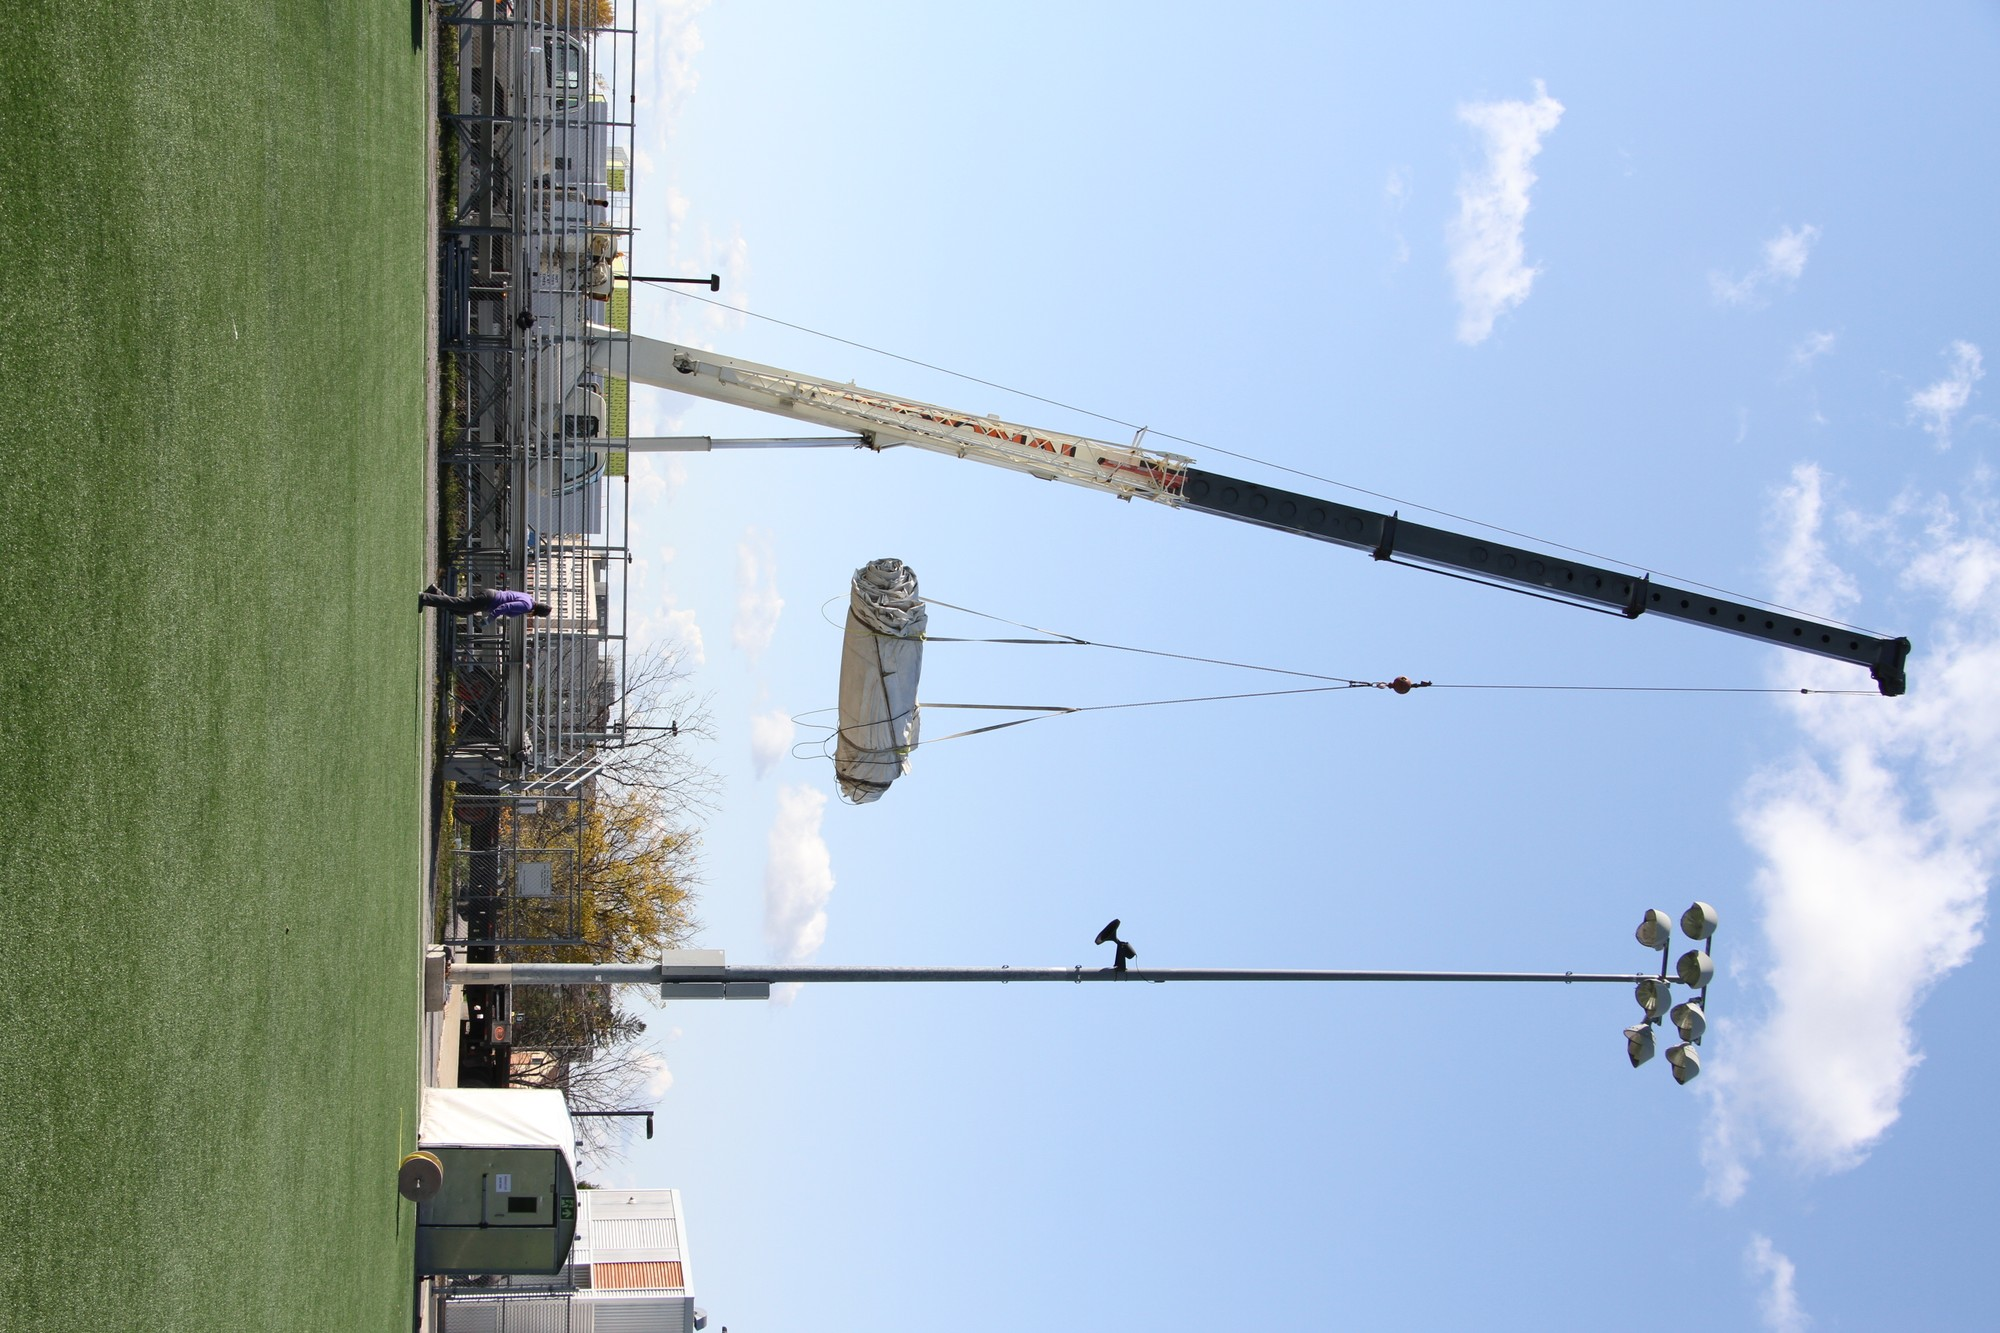 Martha Peak, senior manager of Athletics and Recreation, walks by as the crane lifts the largest tarp off the field.